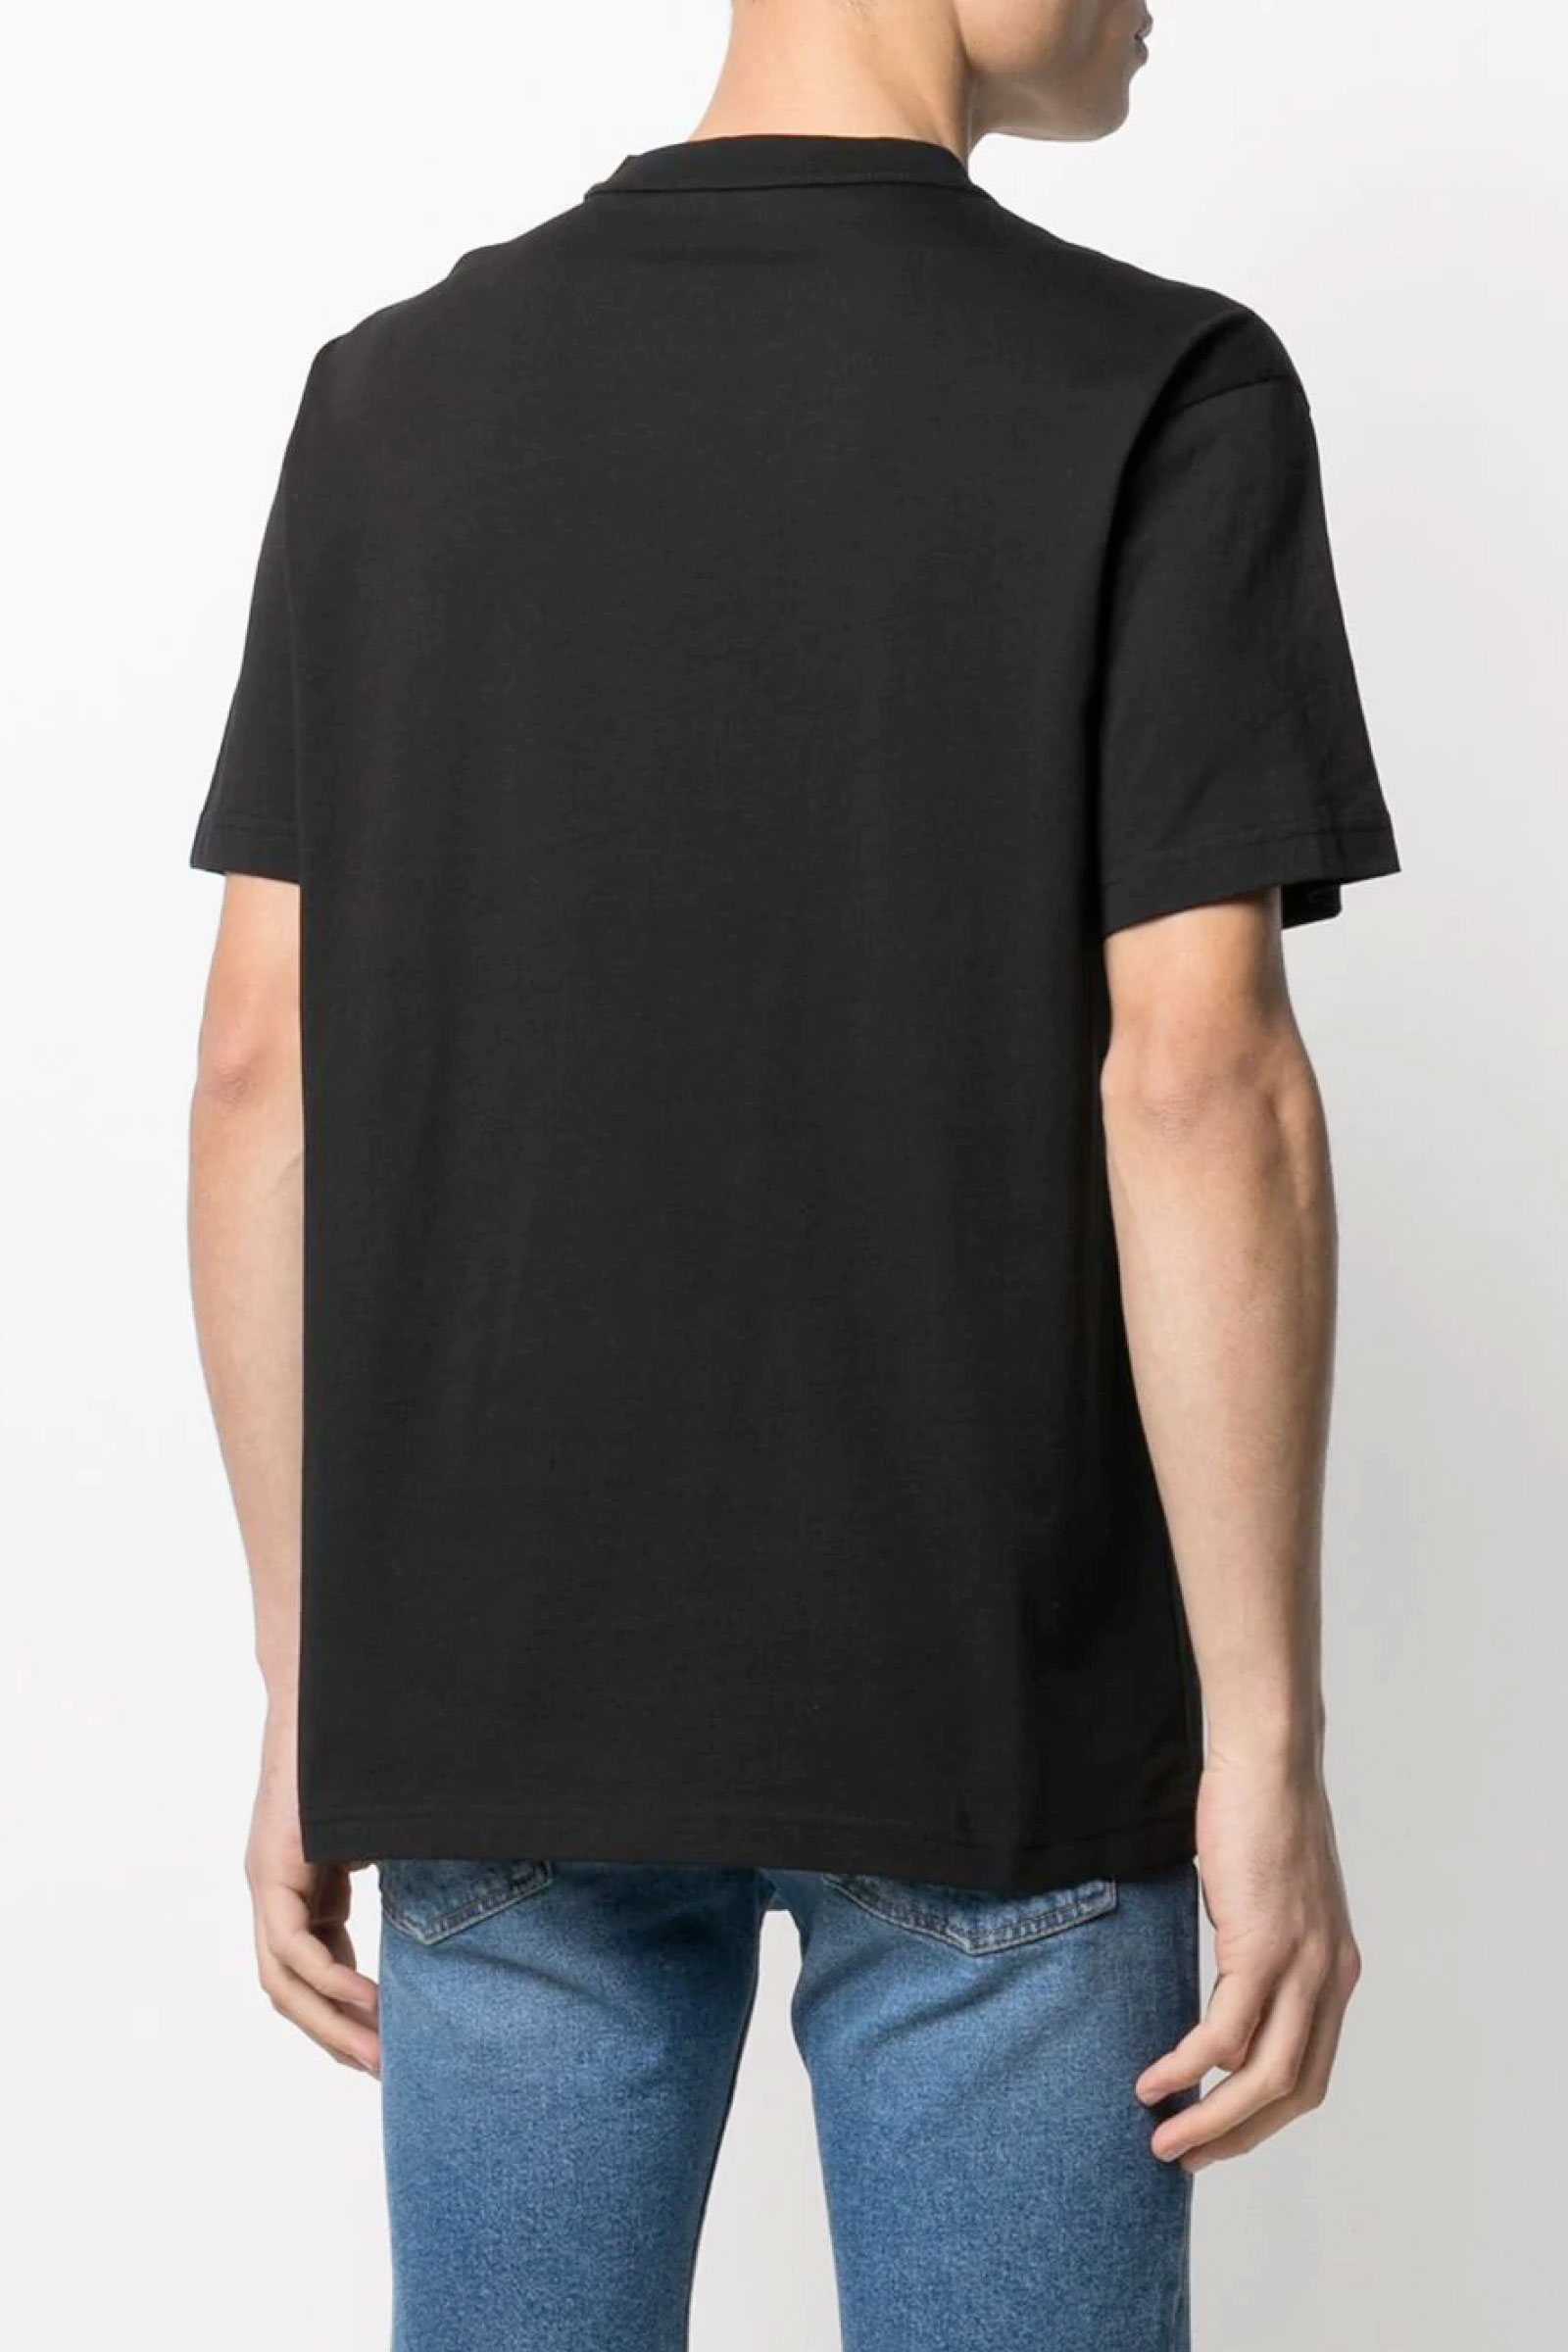 VERSACE JEANS COUTURE T-Shirt Uomo VERSACE JEANS COUTURE | T-Shirt | B3GWA74011620899